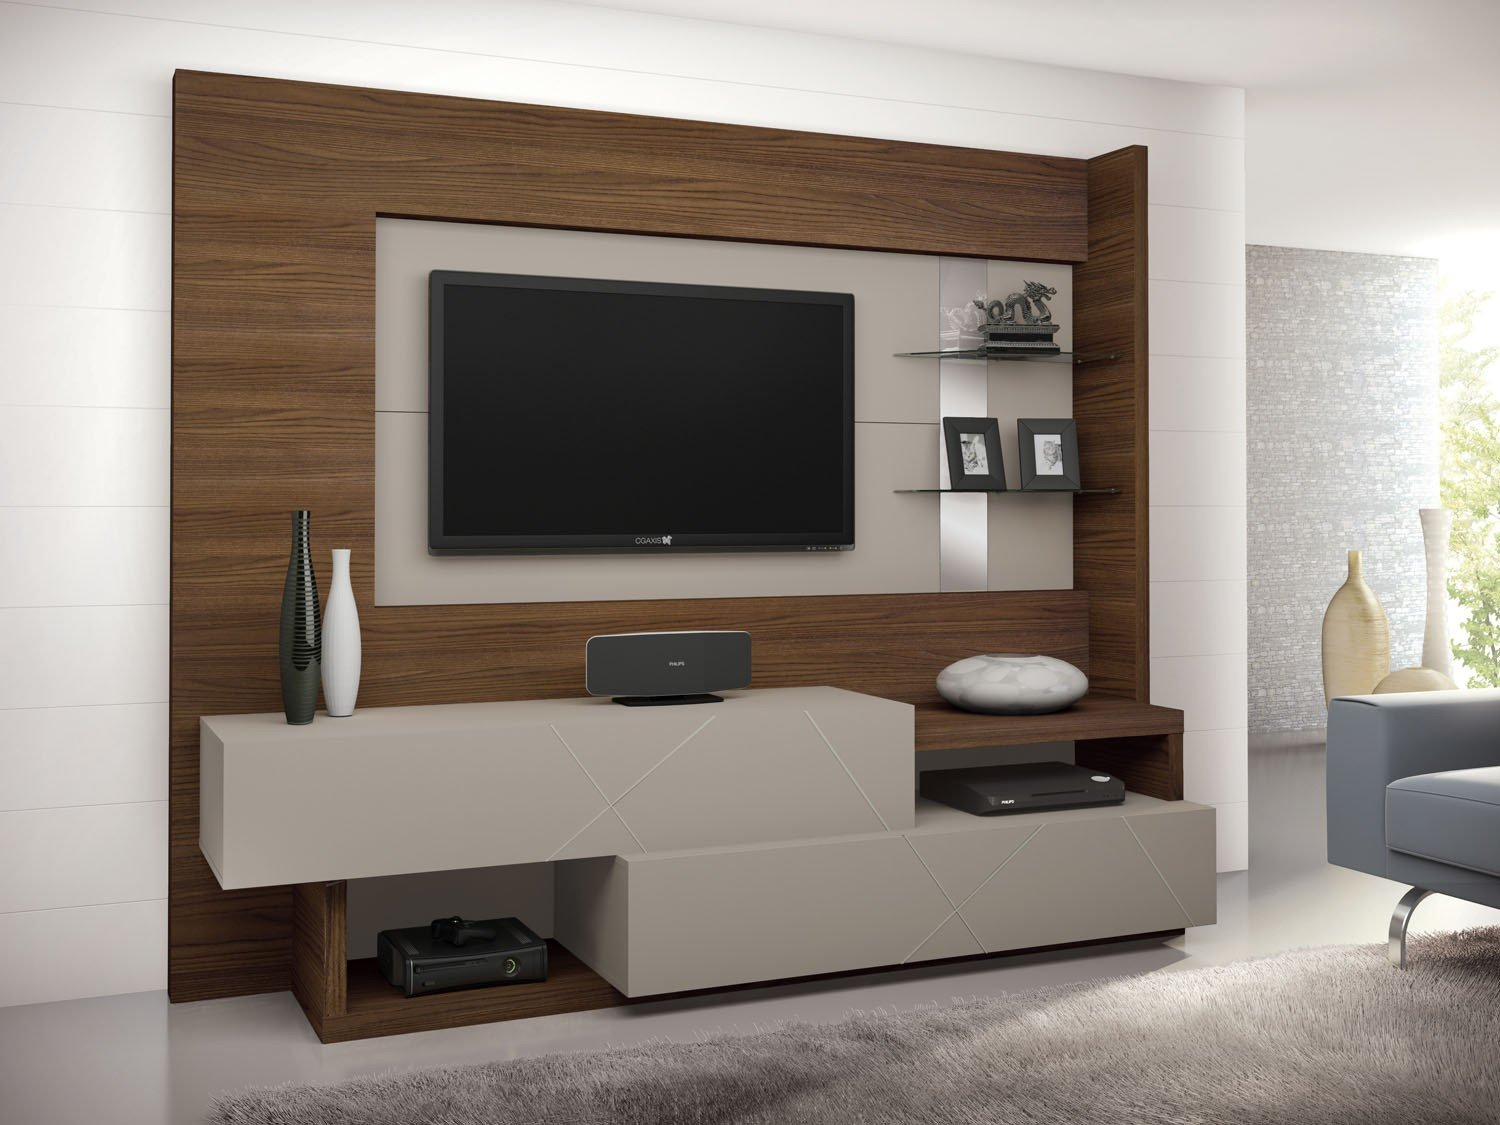 Estante home para tv presence 2 gavetas 2 prateleiras - Estantes de pared originales ...